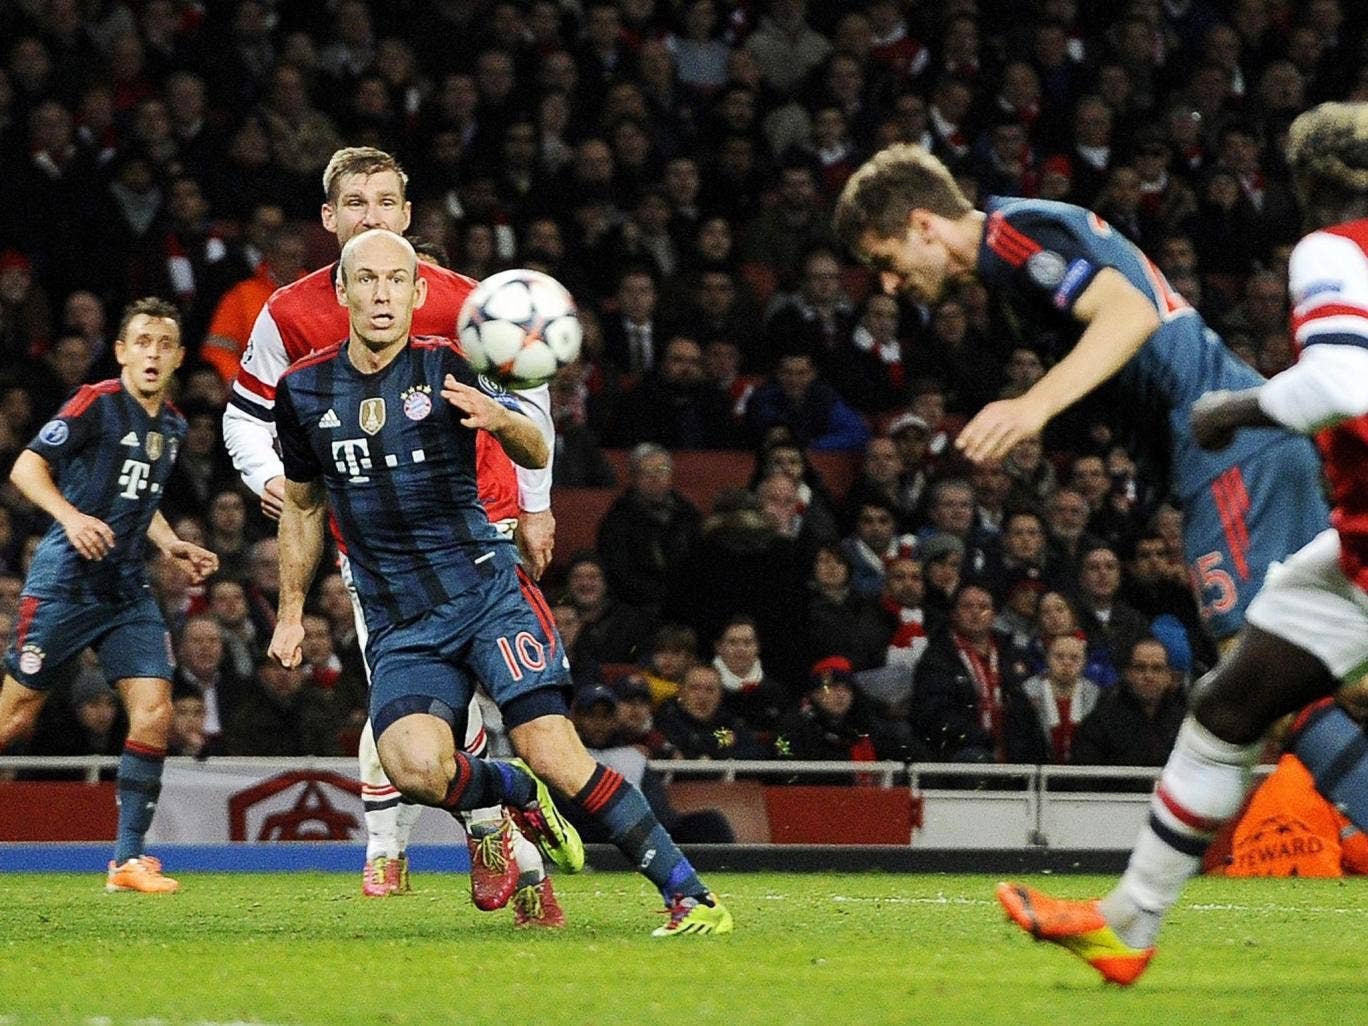 Thomas Müller scores Bayern Munich's second goal to leave Arsenal on the brink of elimination